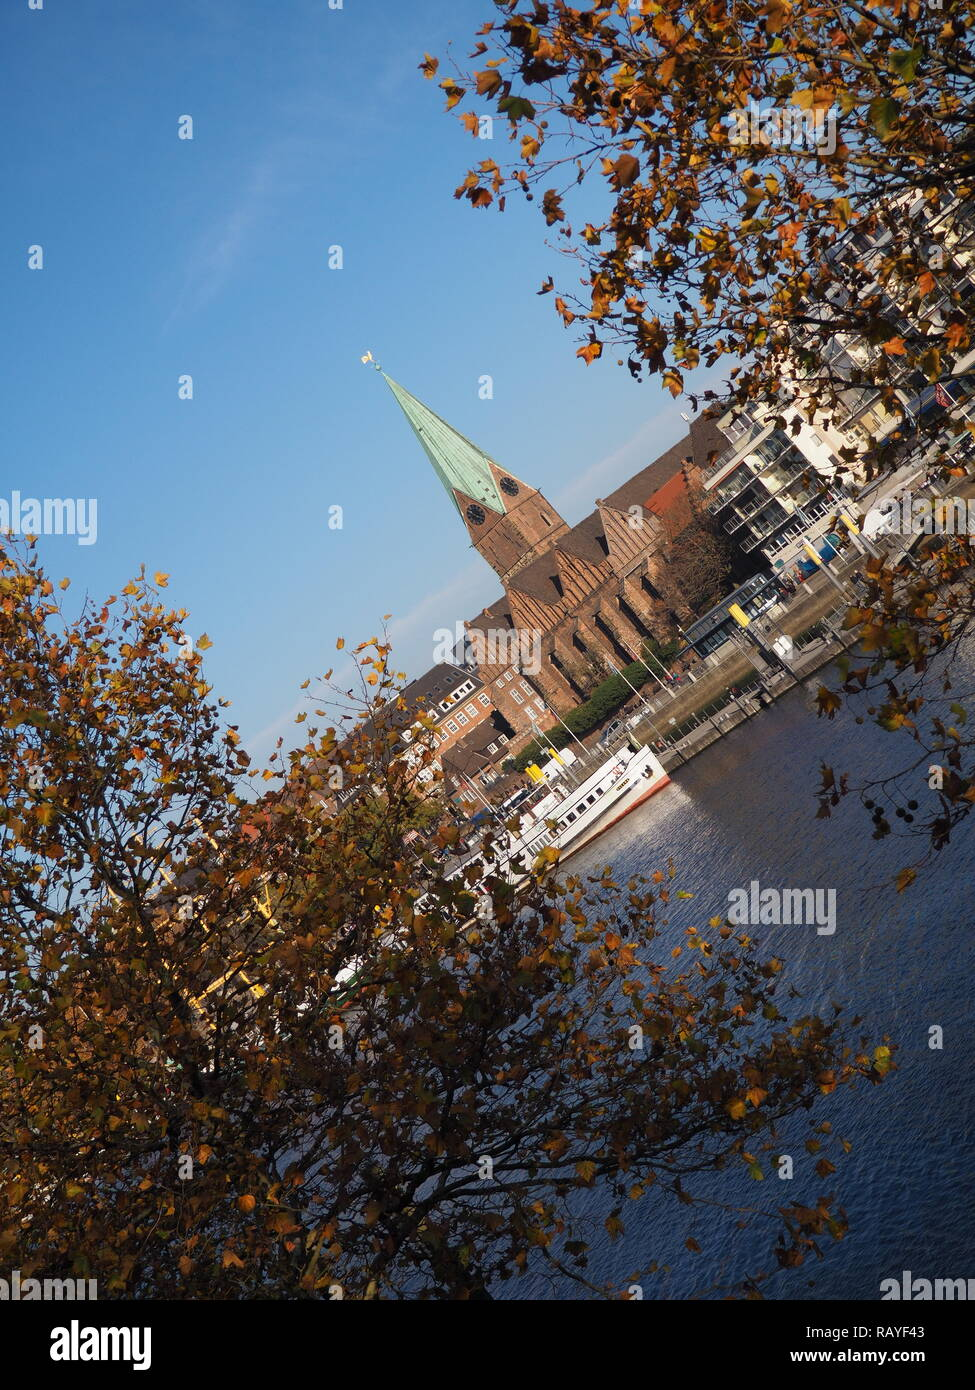 Bremen, Germany - River Weser with St. Martini church framed by trees in the foreground with slanted horizon - Stock Image